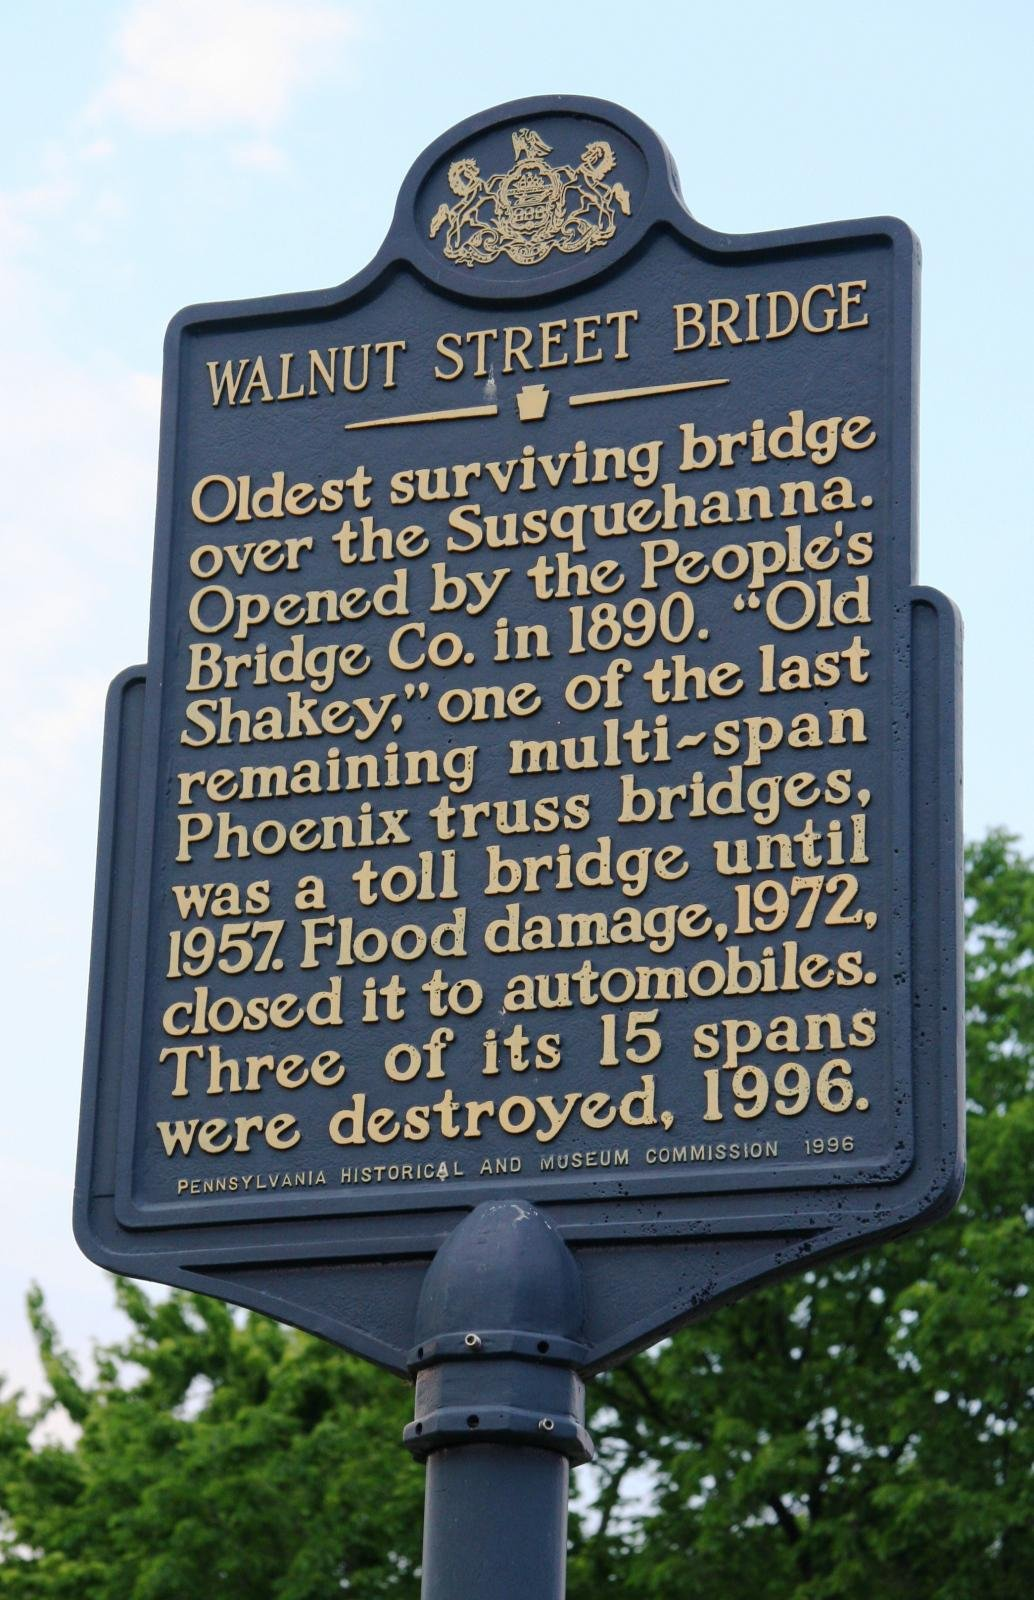 The historical marker that stands near the Walnut Street Bridge.